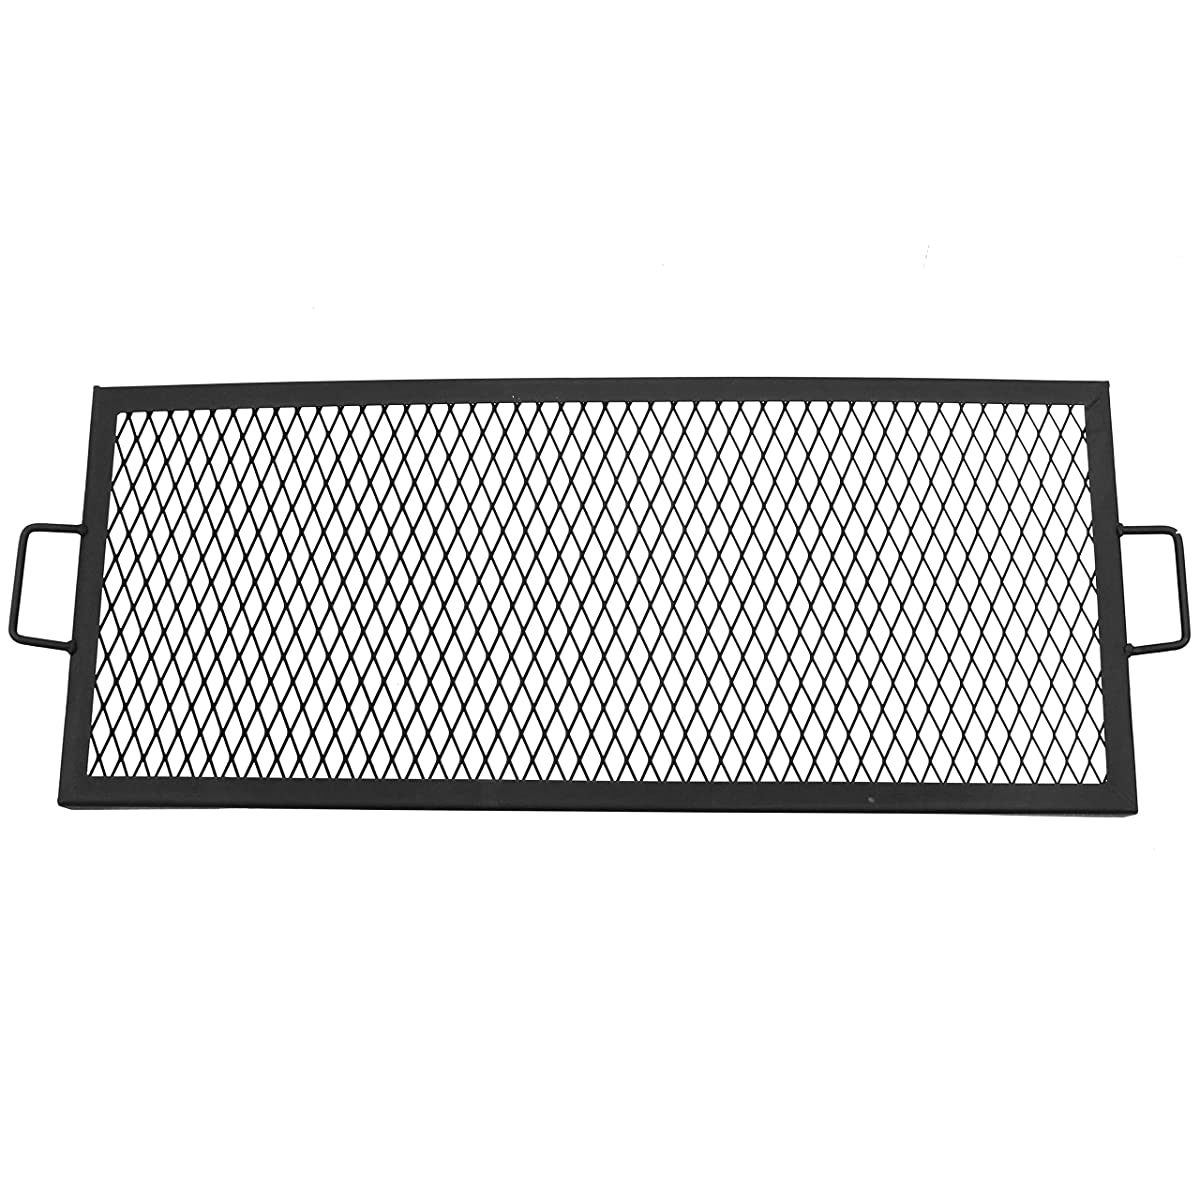 Sunnydaze X-Marks Fire Pit Cooking Grill Grate, Outdoor Rectangle BBQ Campfire Grill, Camping Cookware, 36 Inch